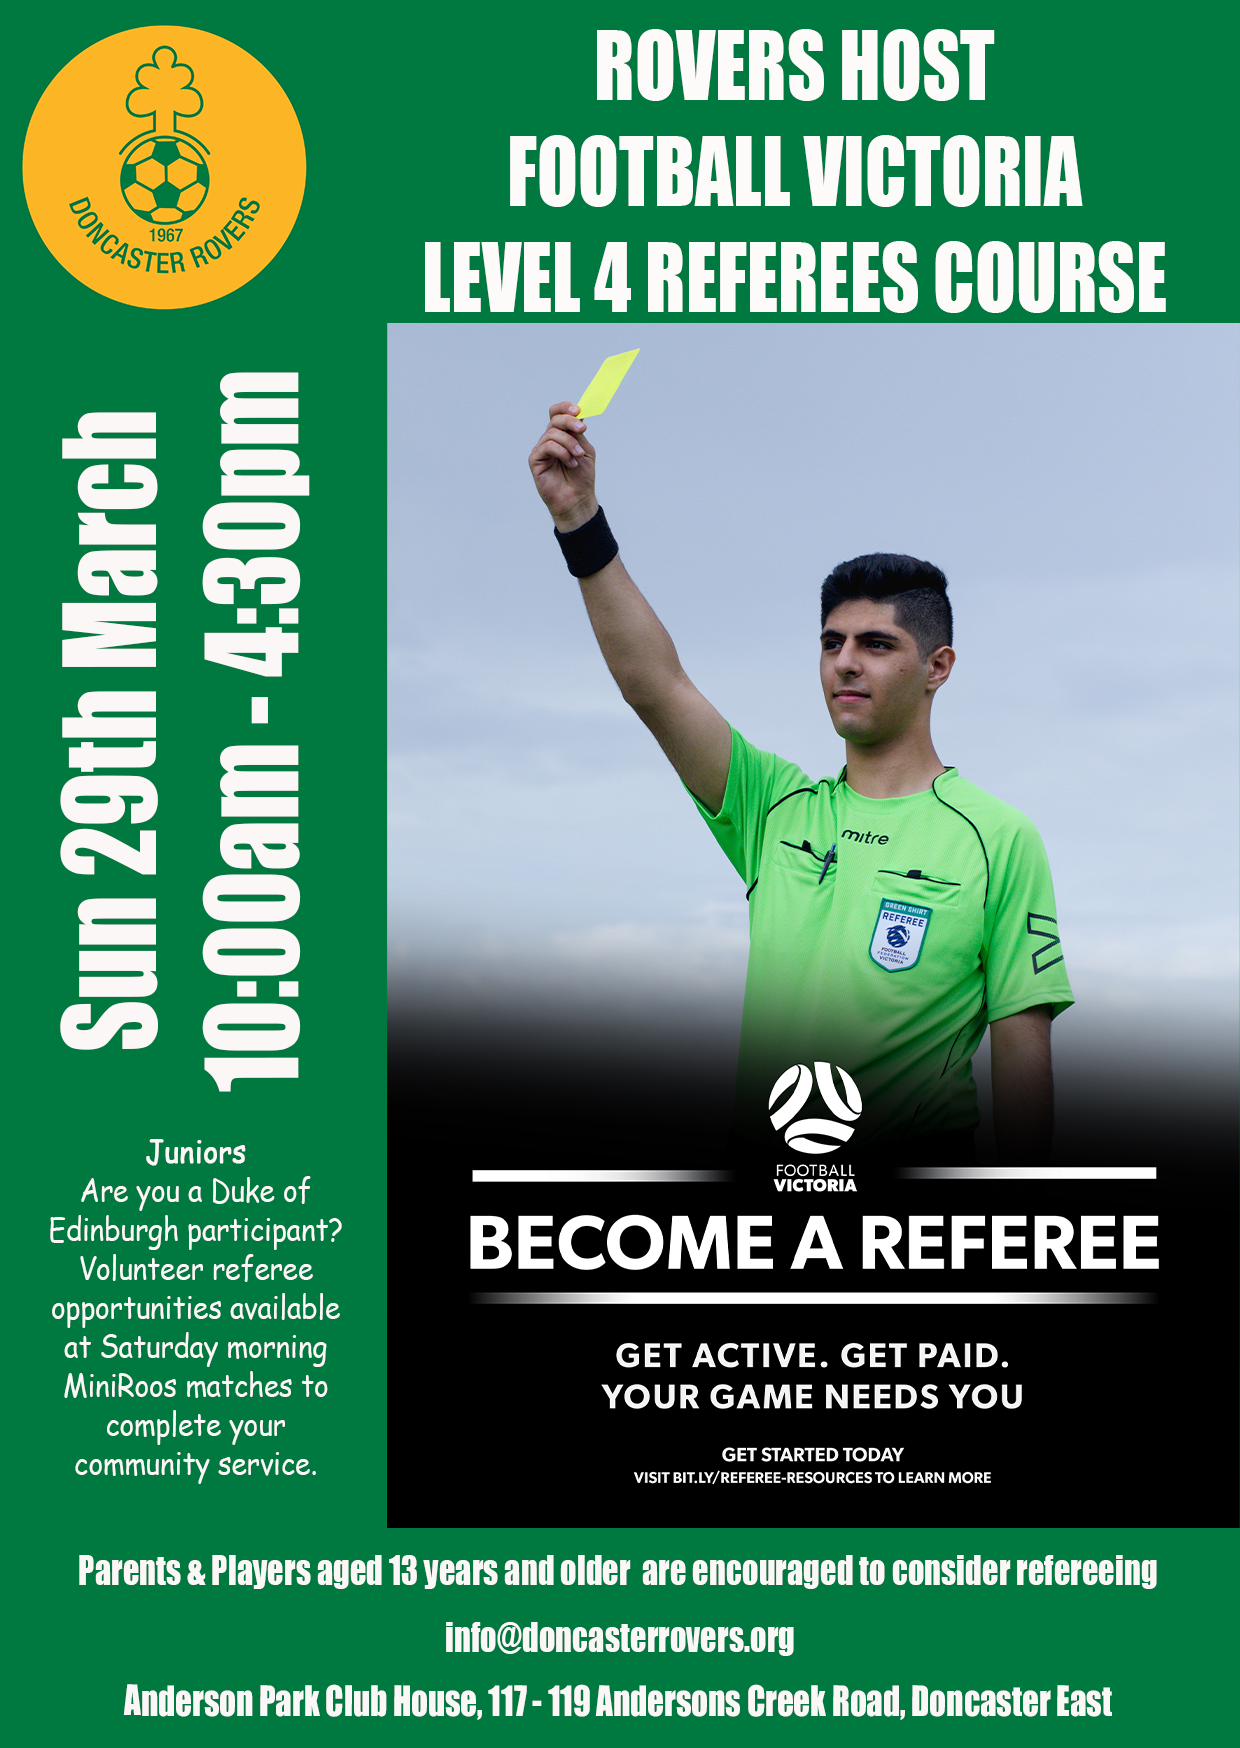 DRSC Level 4 Referees Course